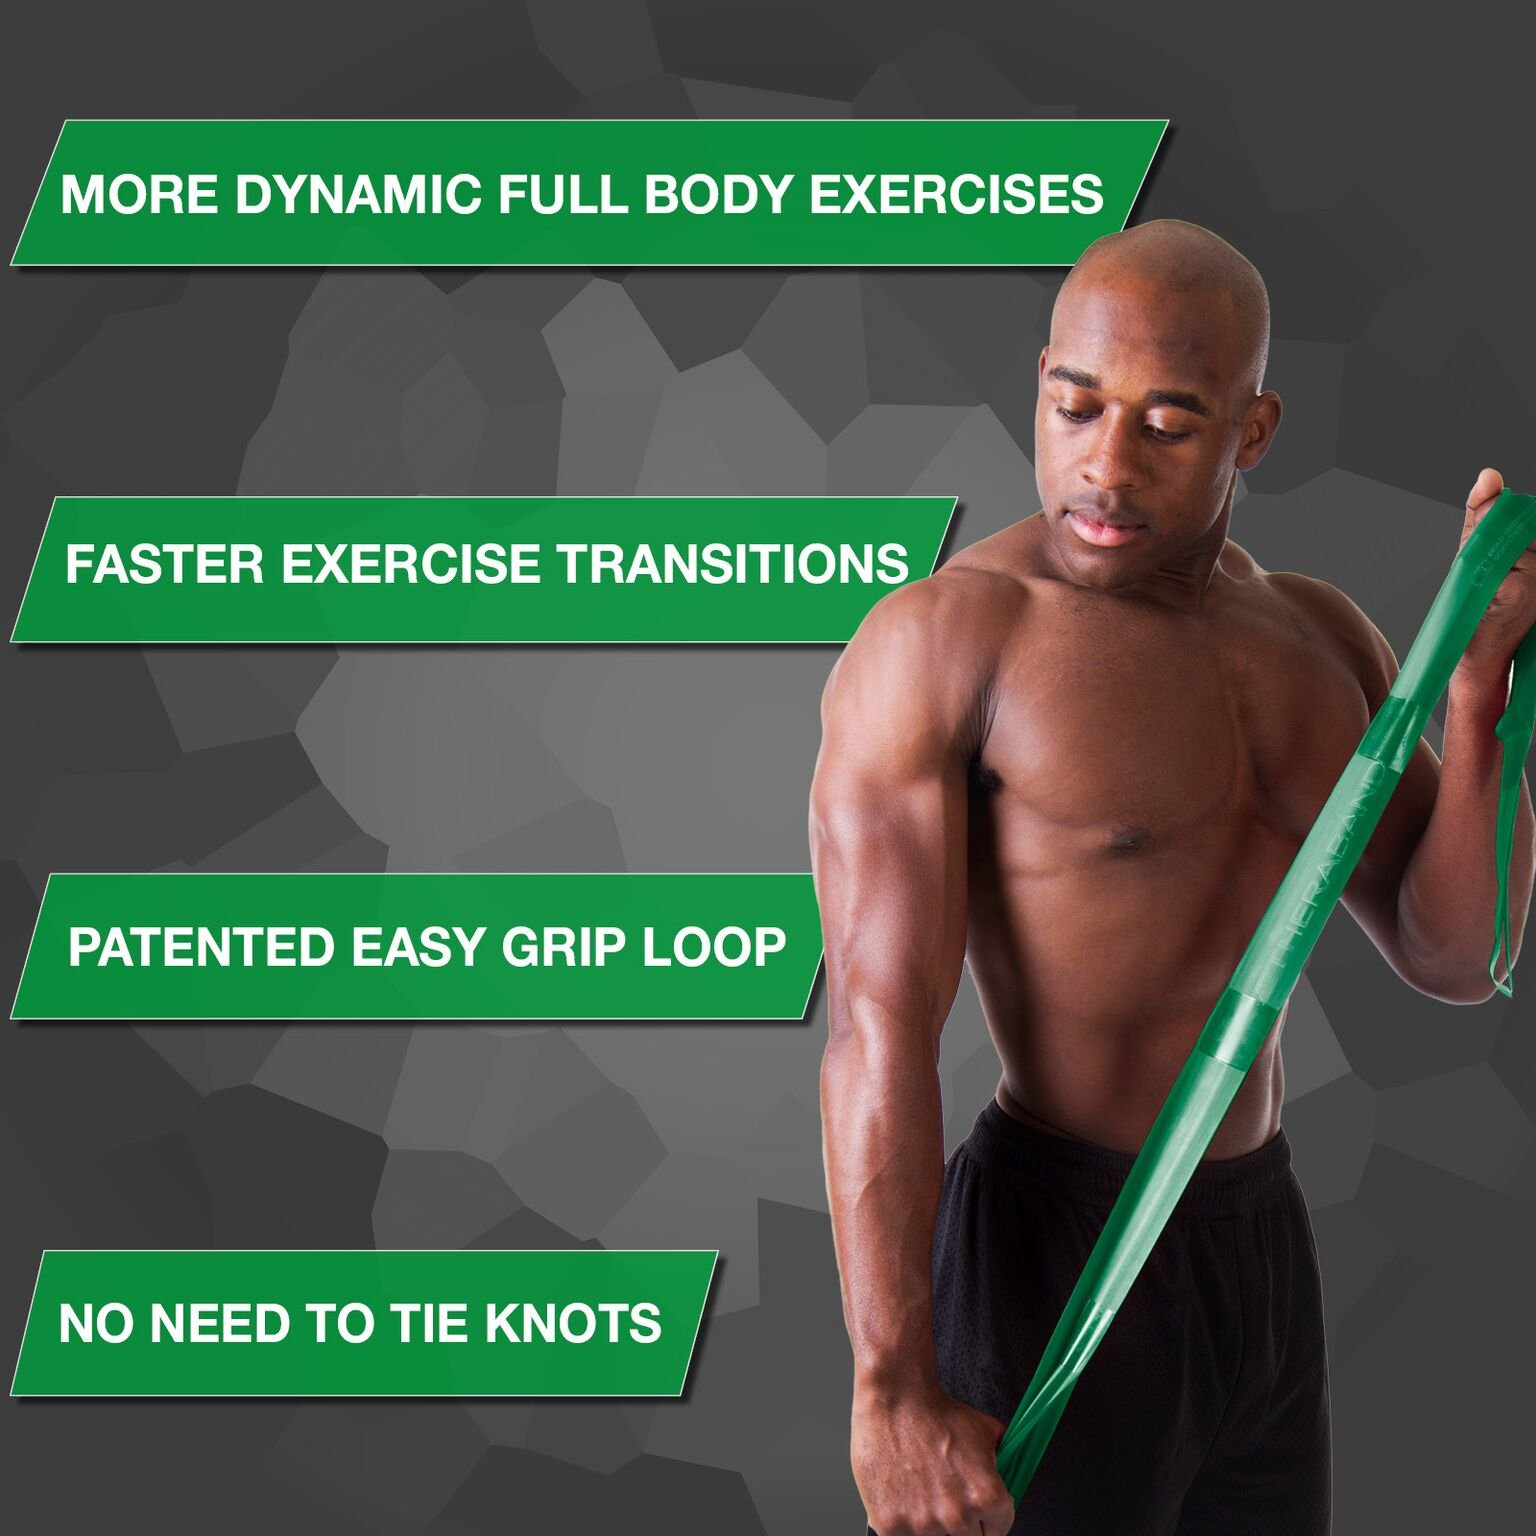 TheraBand CLX Resistance Band with Loops, Fitness Band for Home Exercise and Full Body Workouts, Portable Gym Equipment, Gift for Athletes, Individual 5 Foot Band, Green, Heavy, Intermediate Level 1 by TheraBand (Image #2)